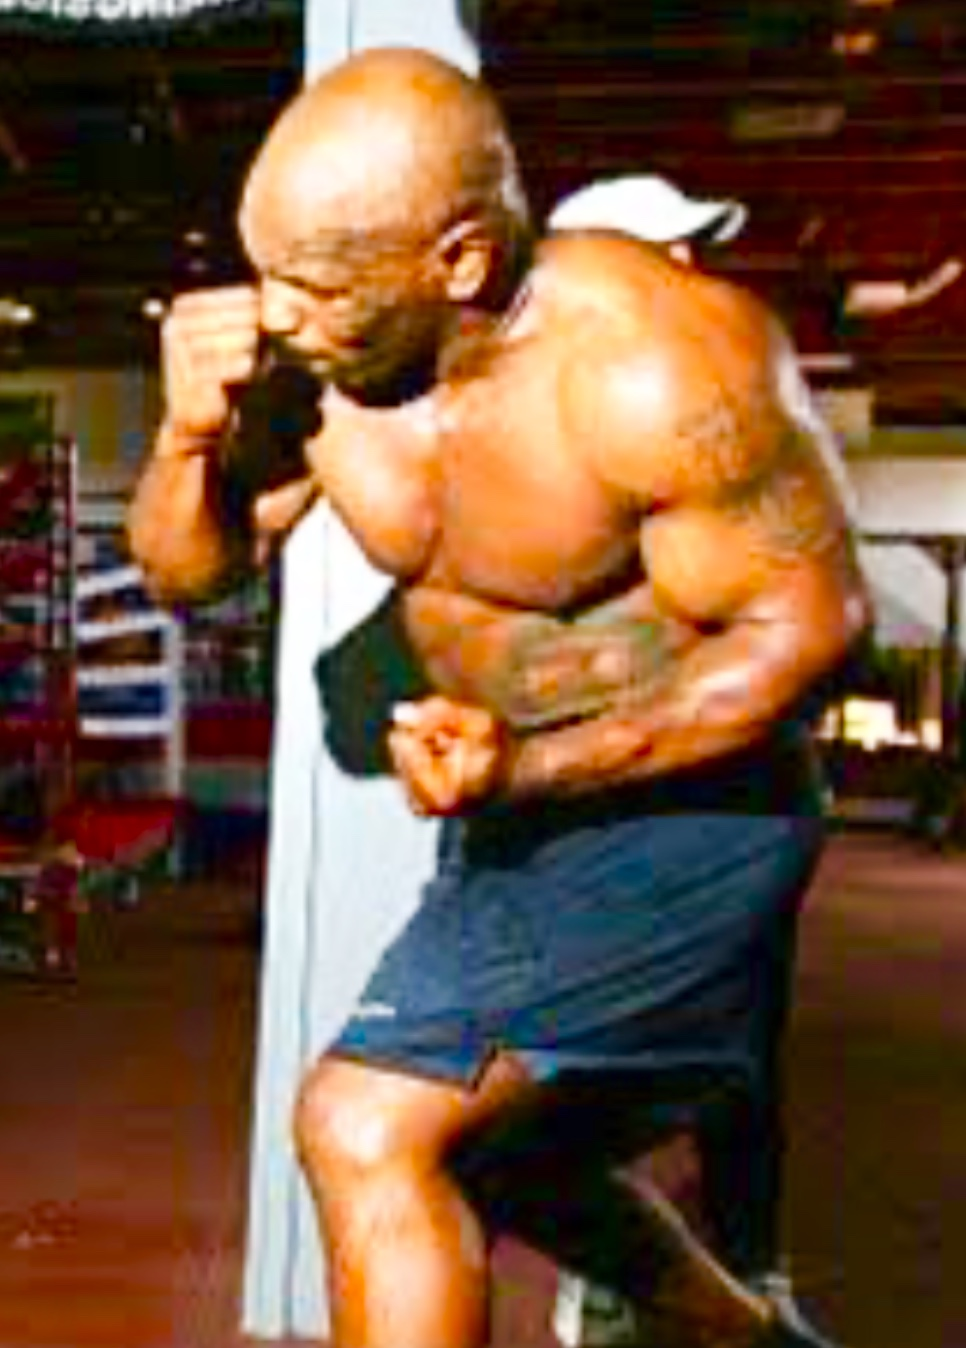 Keith Middlebrook, Keith Middlebrook Mike Tyson, Mike Tyson vs Roy Jones, Iron Mike Tyson, Roy Captain Hook Jones, Keith Middlebrook, Keith Middlebrook Real Iron Man, Keith Middlebrook Apparel Line, Keith Middlebrook Brand, Keith Middlebrook Super Entrepreneur Icon, Keith Middlebrook Foundation, NFL, MLB, NBA, NASCAR, Boxing, YouTube Keith Middlebrook, Britney Spears, Britney Spears Pop Icon, Sexy Britney Spears, Sexy Britney, Britney Spears Keith Middlebrook, Keith Middlebrook Britney Spears, Britney Spears Las Vegas, Keith Middlebrook, Keith Middlebrook Bio, Keith Middlebrook Real Iron Man, Keith Middlebrook Super Entrepreneur Icon, Keith Middlebrook Reverse Aging Technology, Keith Middlebrook Bodybuilder, YouTube.com Keith Middlebrook, Keith Middlebrook, Keith Middlebrook Foundation, Charity for Kids, YouTube.com Keith Middlebrook, Keith Middlebrook Twitter @1KMiddlebrook, Keith Middlebrook Instagram @KeithMiddlebrook1, Success Wealth Prosperity, Keith Middlebrook Marvel, Natural Organic, Keith Middlebrook Nutrition, Keith Middlebrook Gym talk, Keith Middlebrook Ballers, IMDB.com Keith Middlebrook, Keith Middlebrook Muscle, God, Goals, Gym, Gratitude, Giving, Keith Middlebrook Real Estate, Keith Middlebrook Xccelerated Success, Keith Middlebrook Training, Training, Natural, Organic, Keith Middlebrook Fans, Keith Middlebrook Followers, Keith Middlebrook Net Worth 2020, Keith Middlebrook Billionaire, Keith Middlebrook Success, Keith Middlebrook Winning, Keith Middlebrook WON, Keith Middlebrook Training, NFL, NBA, MLB, Boxing, Racing, NASCAR, NFL Keith Middlebrook, Keith Middlebrook NFL, Keith Middlebrook Sexy, Keith Middlebrook Lindsay Lohan, Lindsay Lohan Keith Middlebrook, Keith Middlebrook Real Iron Man, Keith Middlebrook Marvel, Keith Middlebrook Bio, Keith Middlebrook Real Iron Man, Keith Middlebrook Super Entrepreneur Icon, Britney Spears Keith Middlebrook, Keith Middlebrook Britney Spears, YouTube.com Keith Middlebrook, Keith Middlebrook Foundation, Charity 